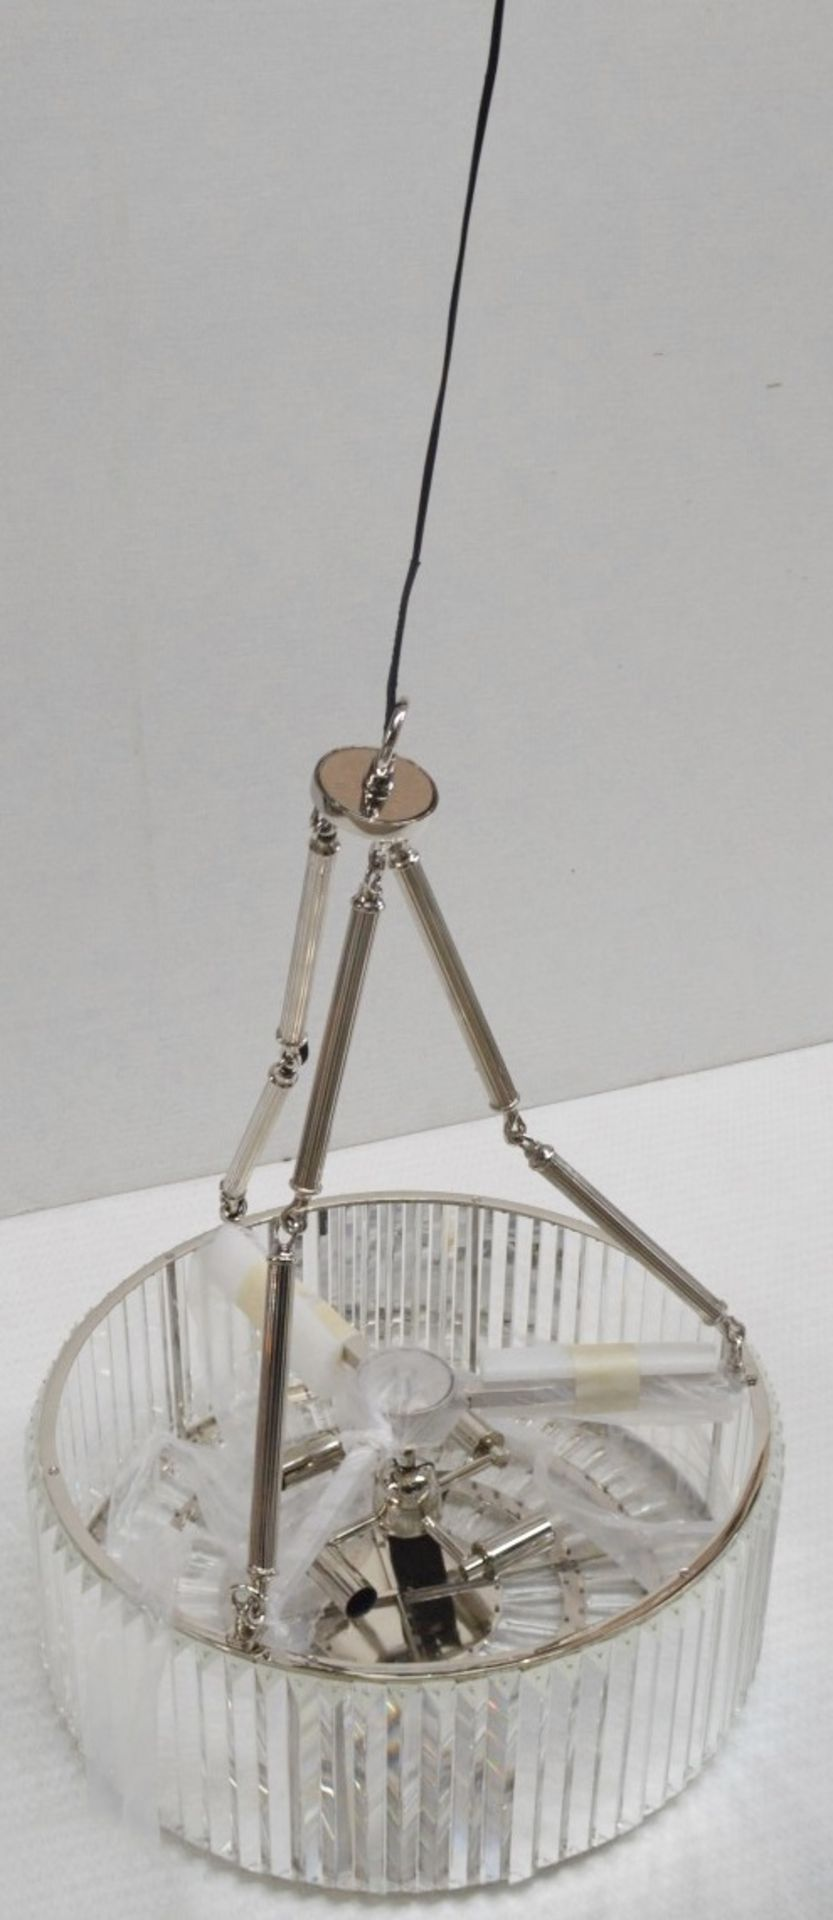 1 x EICHHOLTZ 'Infinity' Art Deco-style Chandelier Featuring Glass Crystal Rods - RRP £1,390 - Image 4 of 10